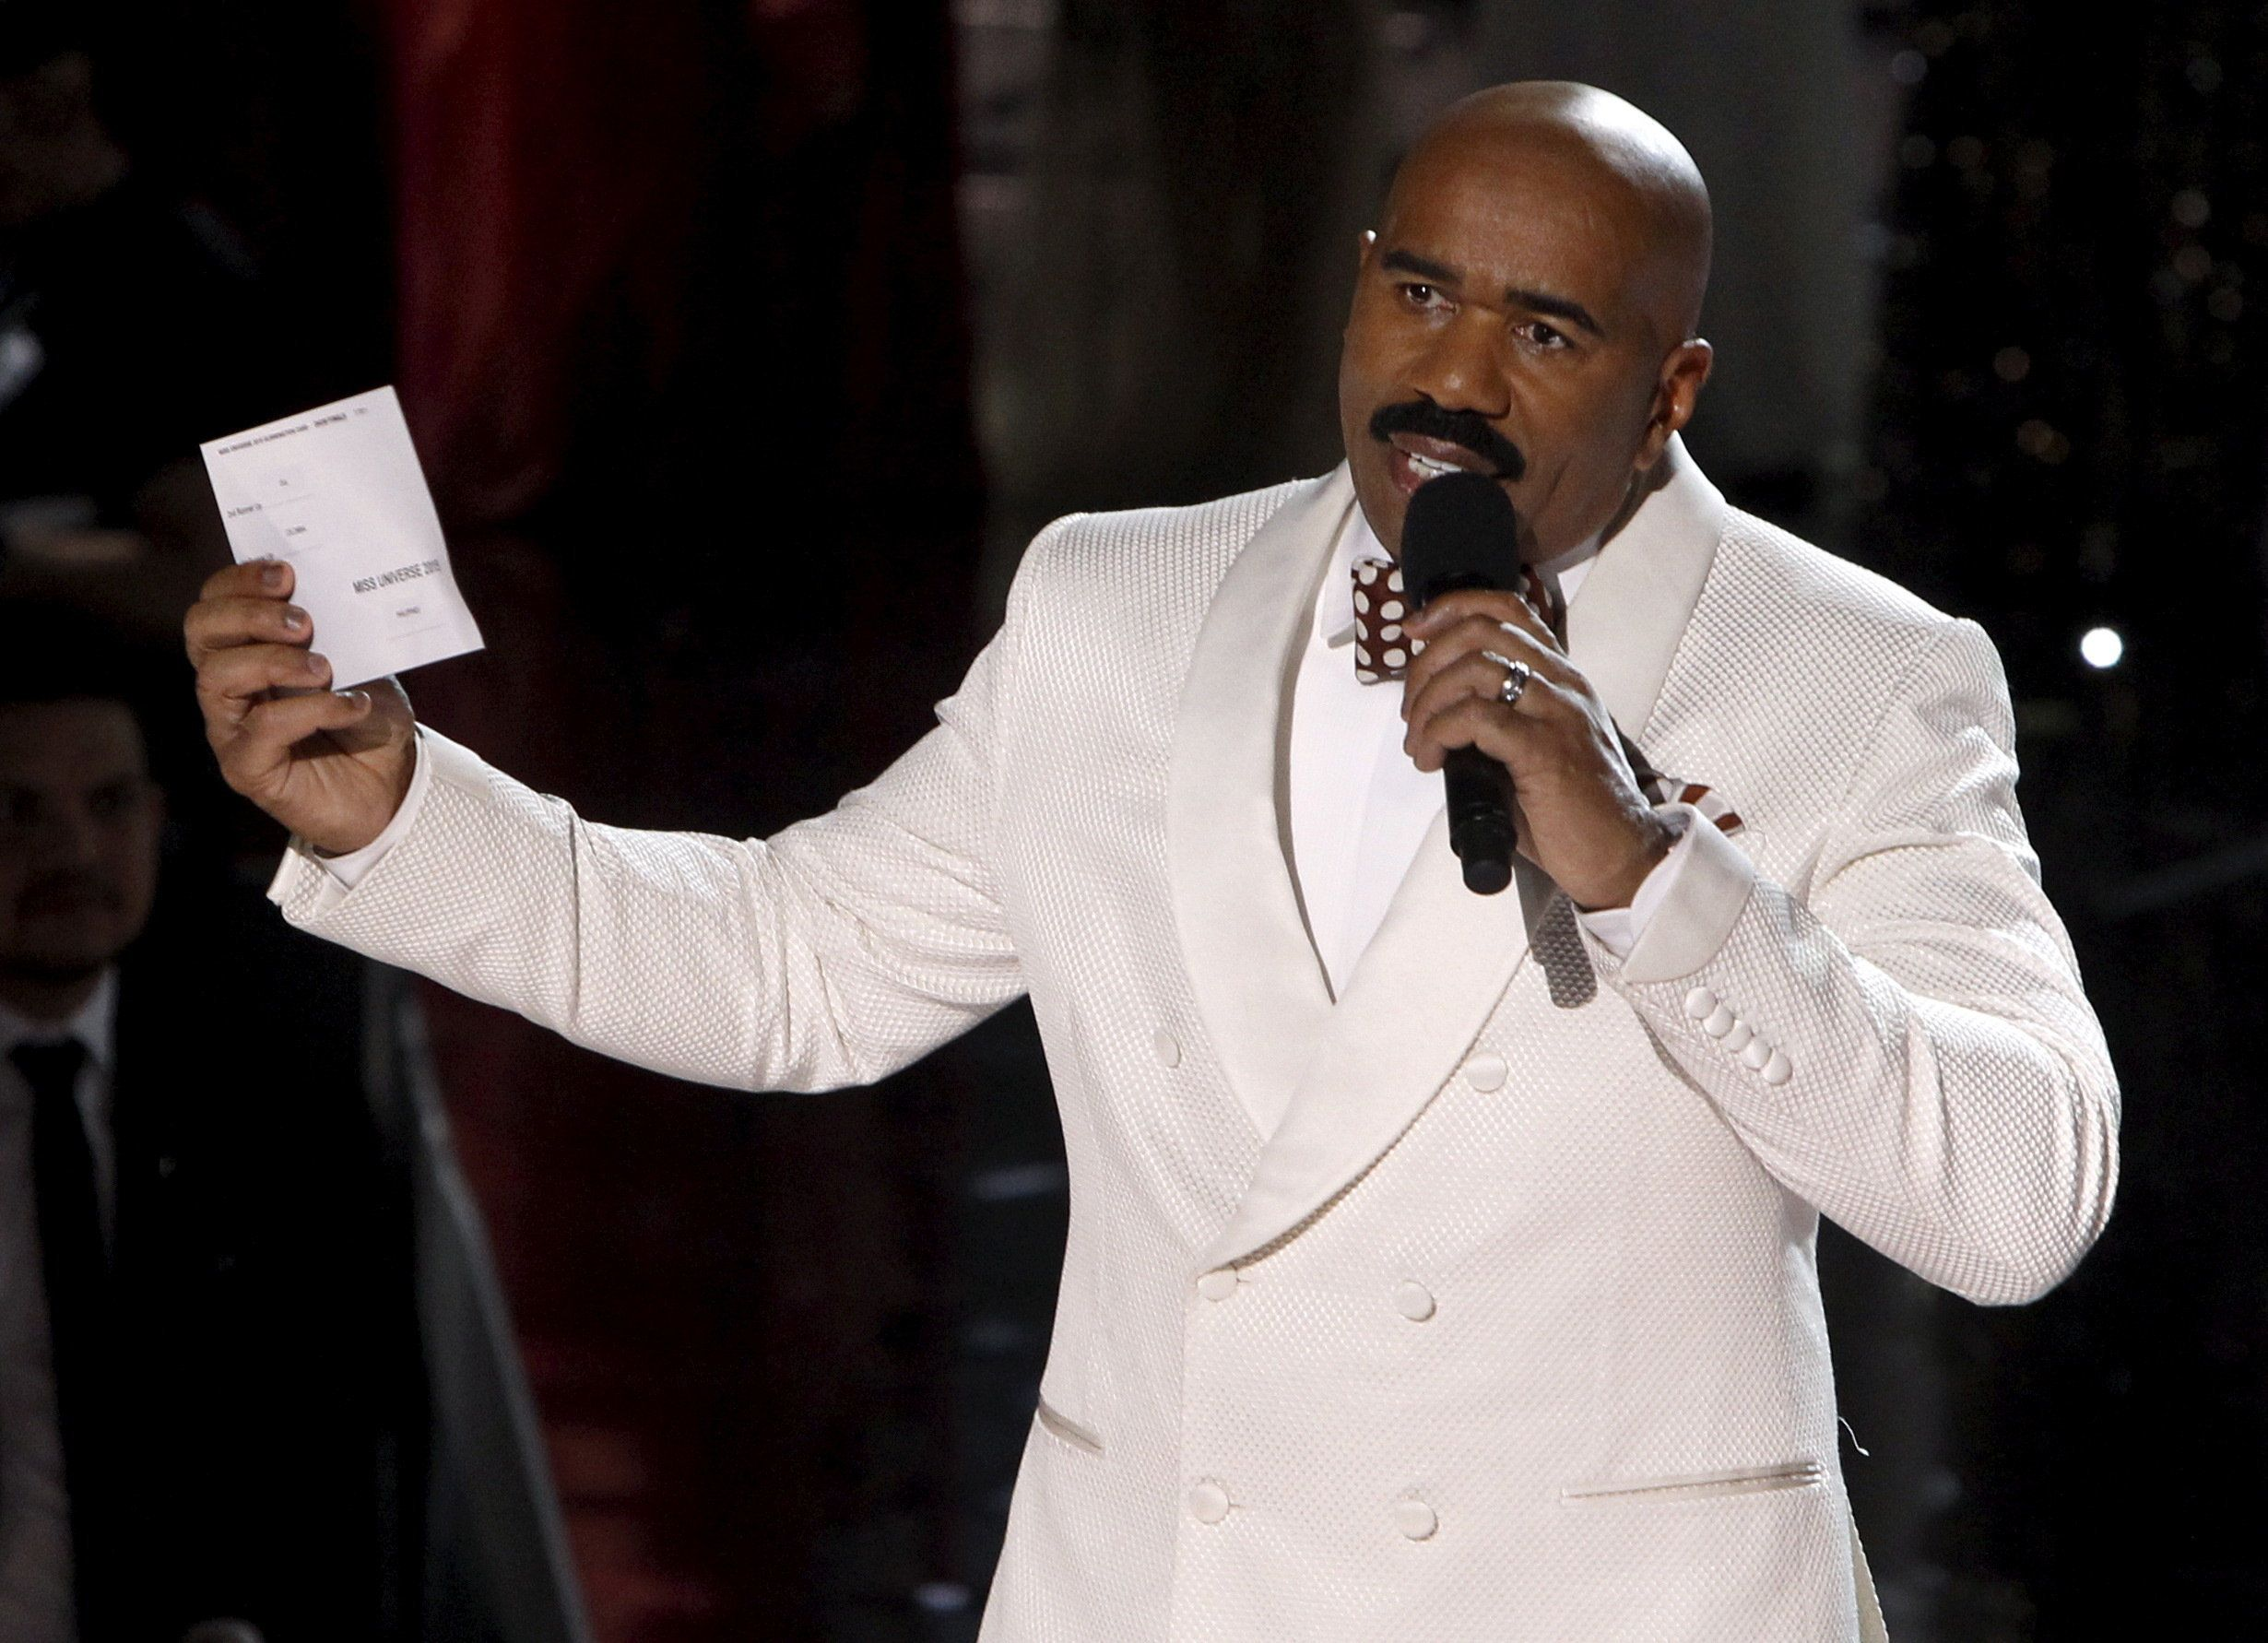 Host Steve Harvey speaks to the audience after Miss Colombia Ariadna Gutierrez was crowned Miss Universe during the 2015 Miss Universe Pageant in Las Vegas, Nevada, December 20, 2015. Harvey said he made a mistake when reading the card. Miss Philippines Pia Alonzo Wurtzbach is the actual winner. REUTERS/Steve Marcus ATTENTION EDITORS - FOR EDITORIAL USE ONLY. NOT FOR SALE FOR MARKETING OR ADVERTISING CAMPAIGNS  TPX IMAGES OF THE DAY